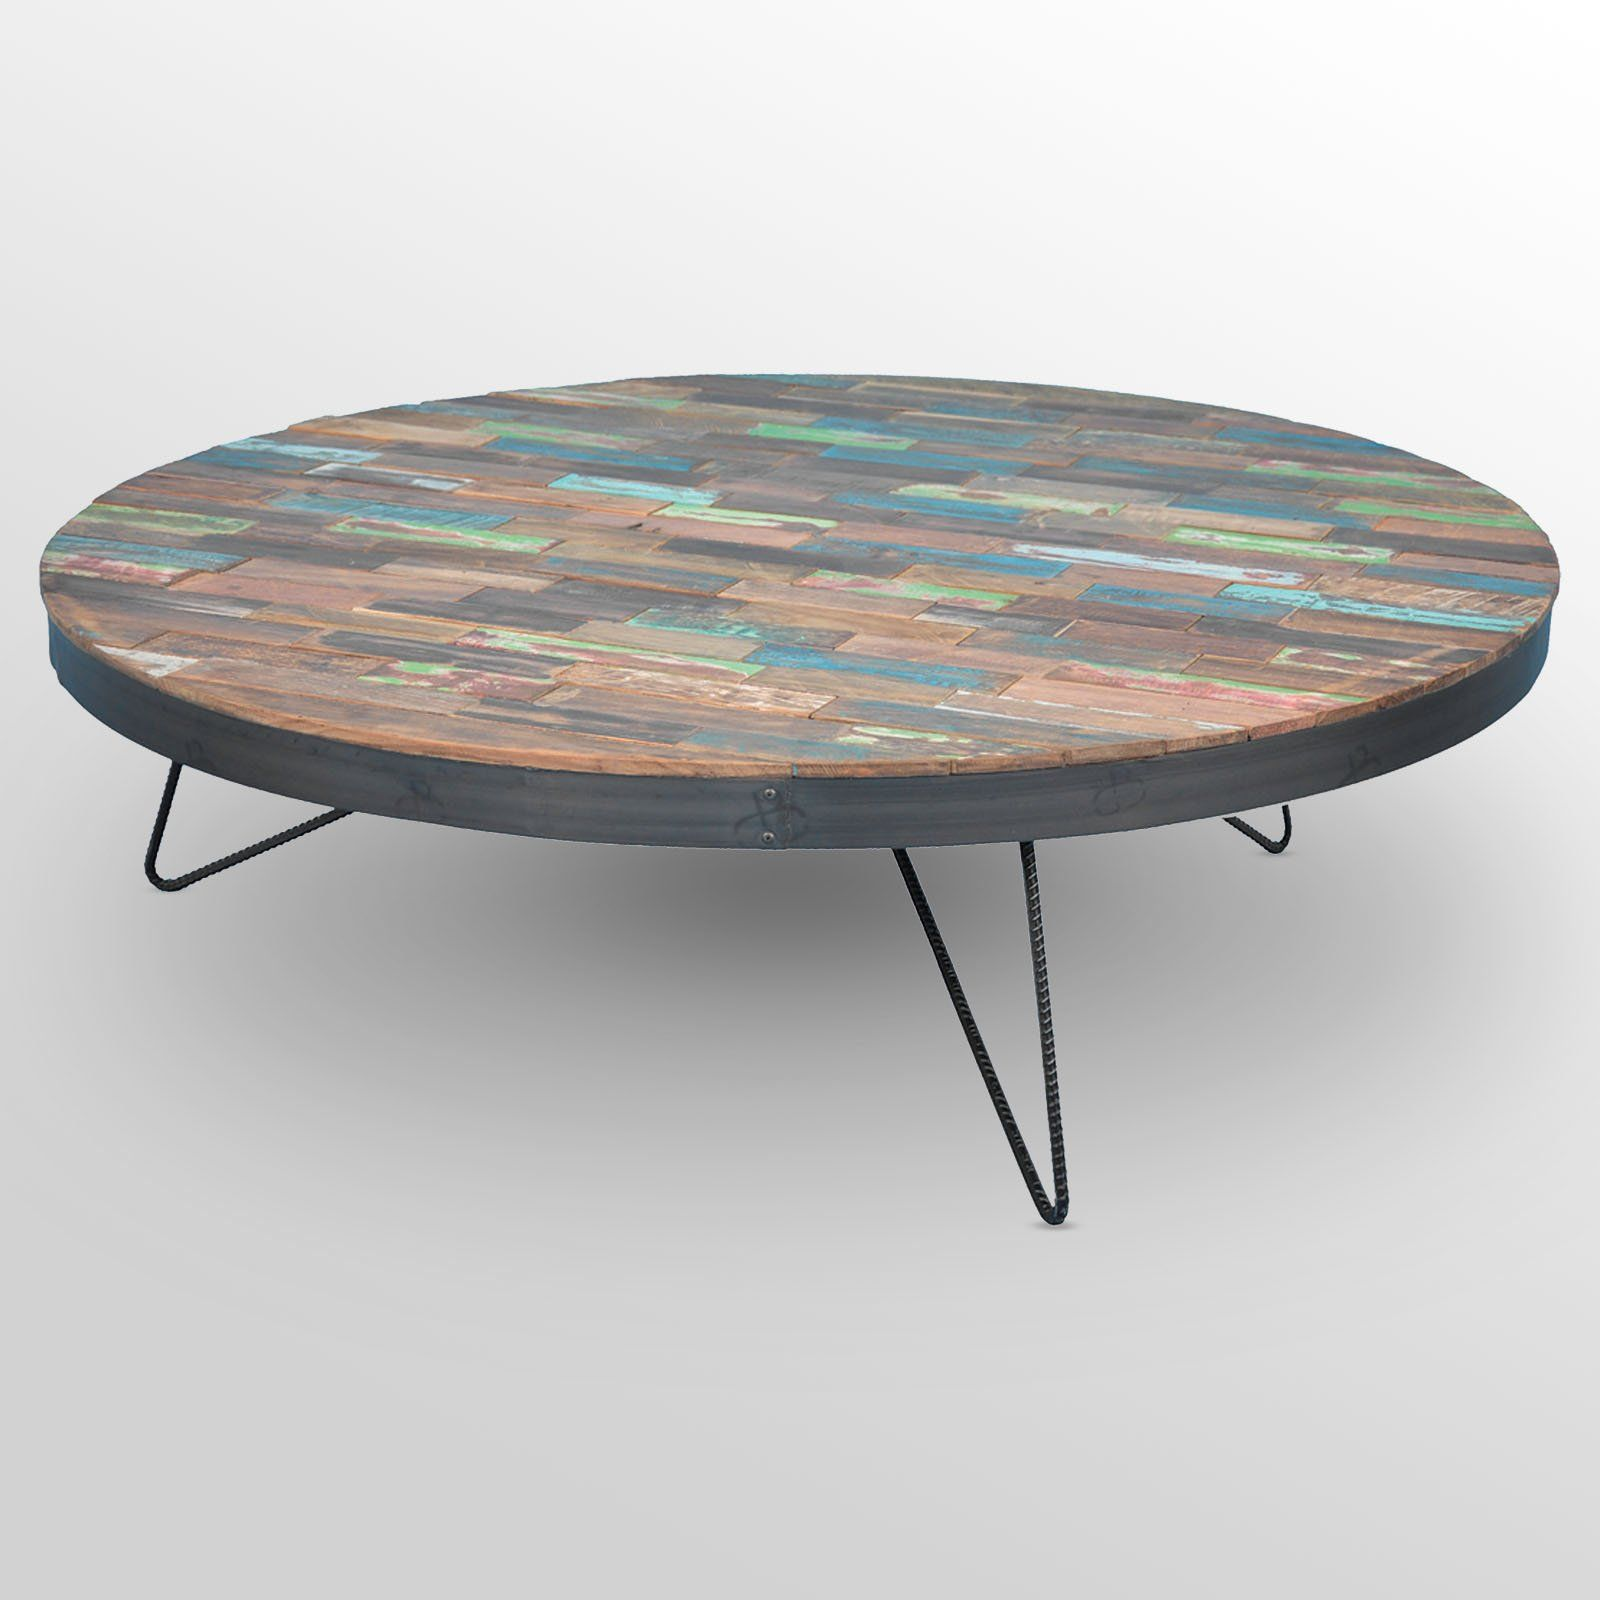 Teak Unique Coffee Table: Reclaimed Teak And Iron Coffee Table